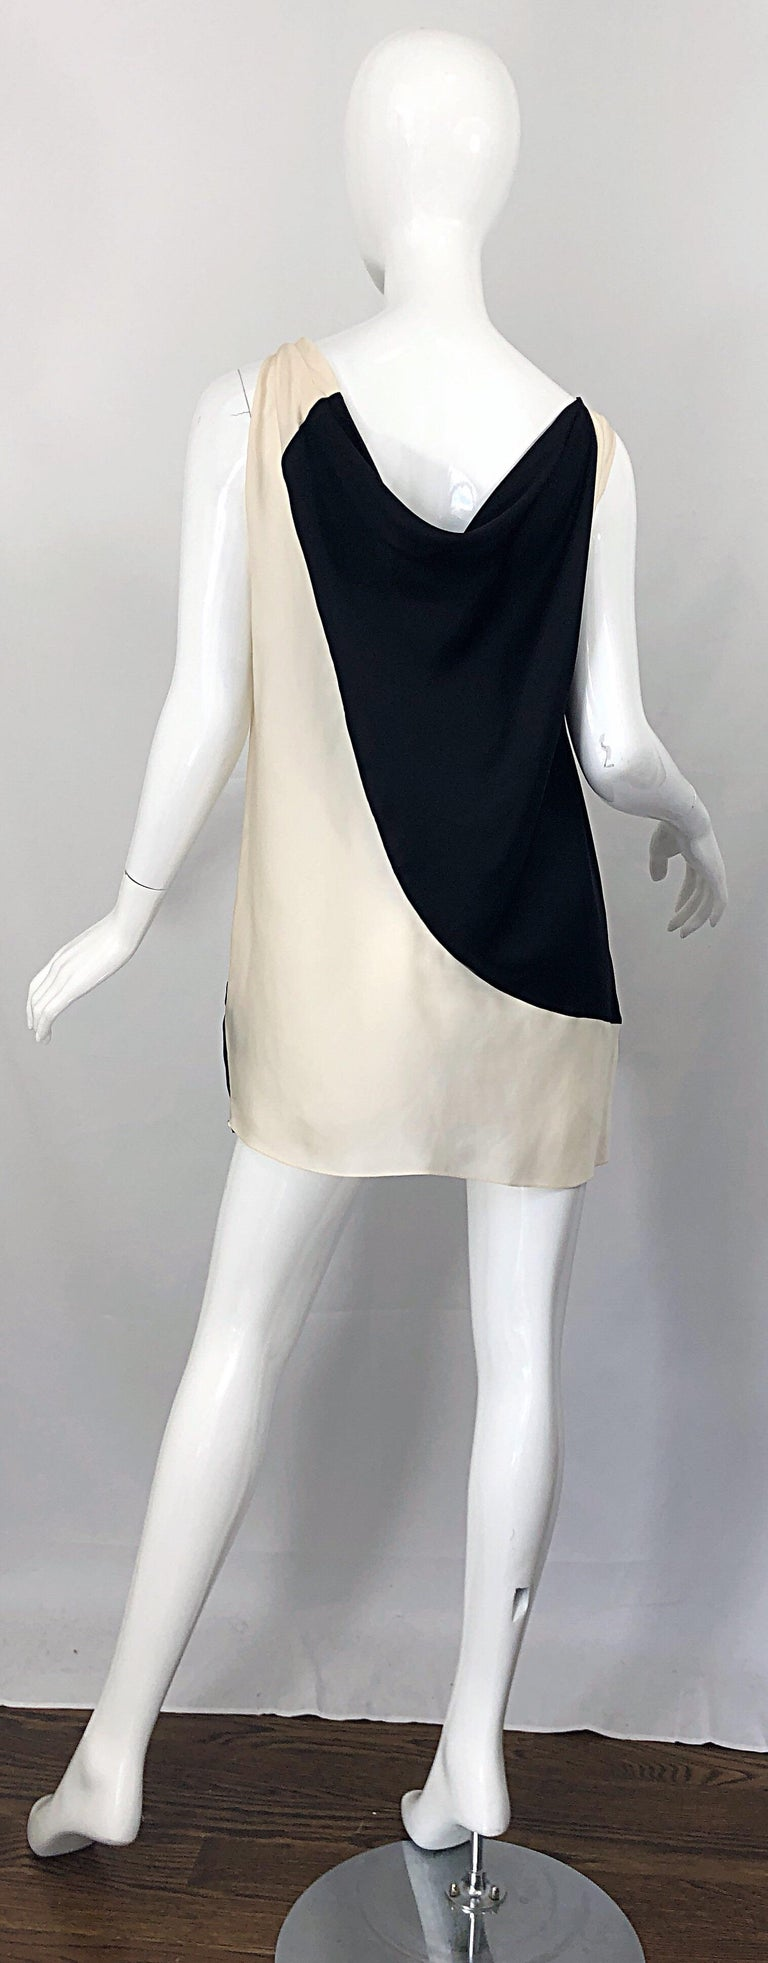 Beige Vintage Donna Karan Runway Collection Black & White Ivory Sz 10 / 12 Tunic Dress For Sale